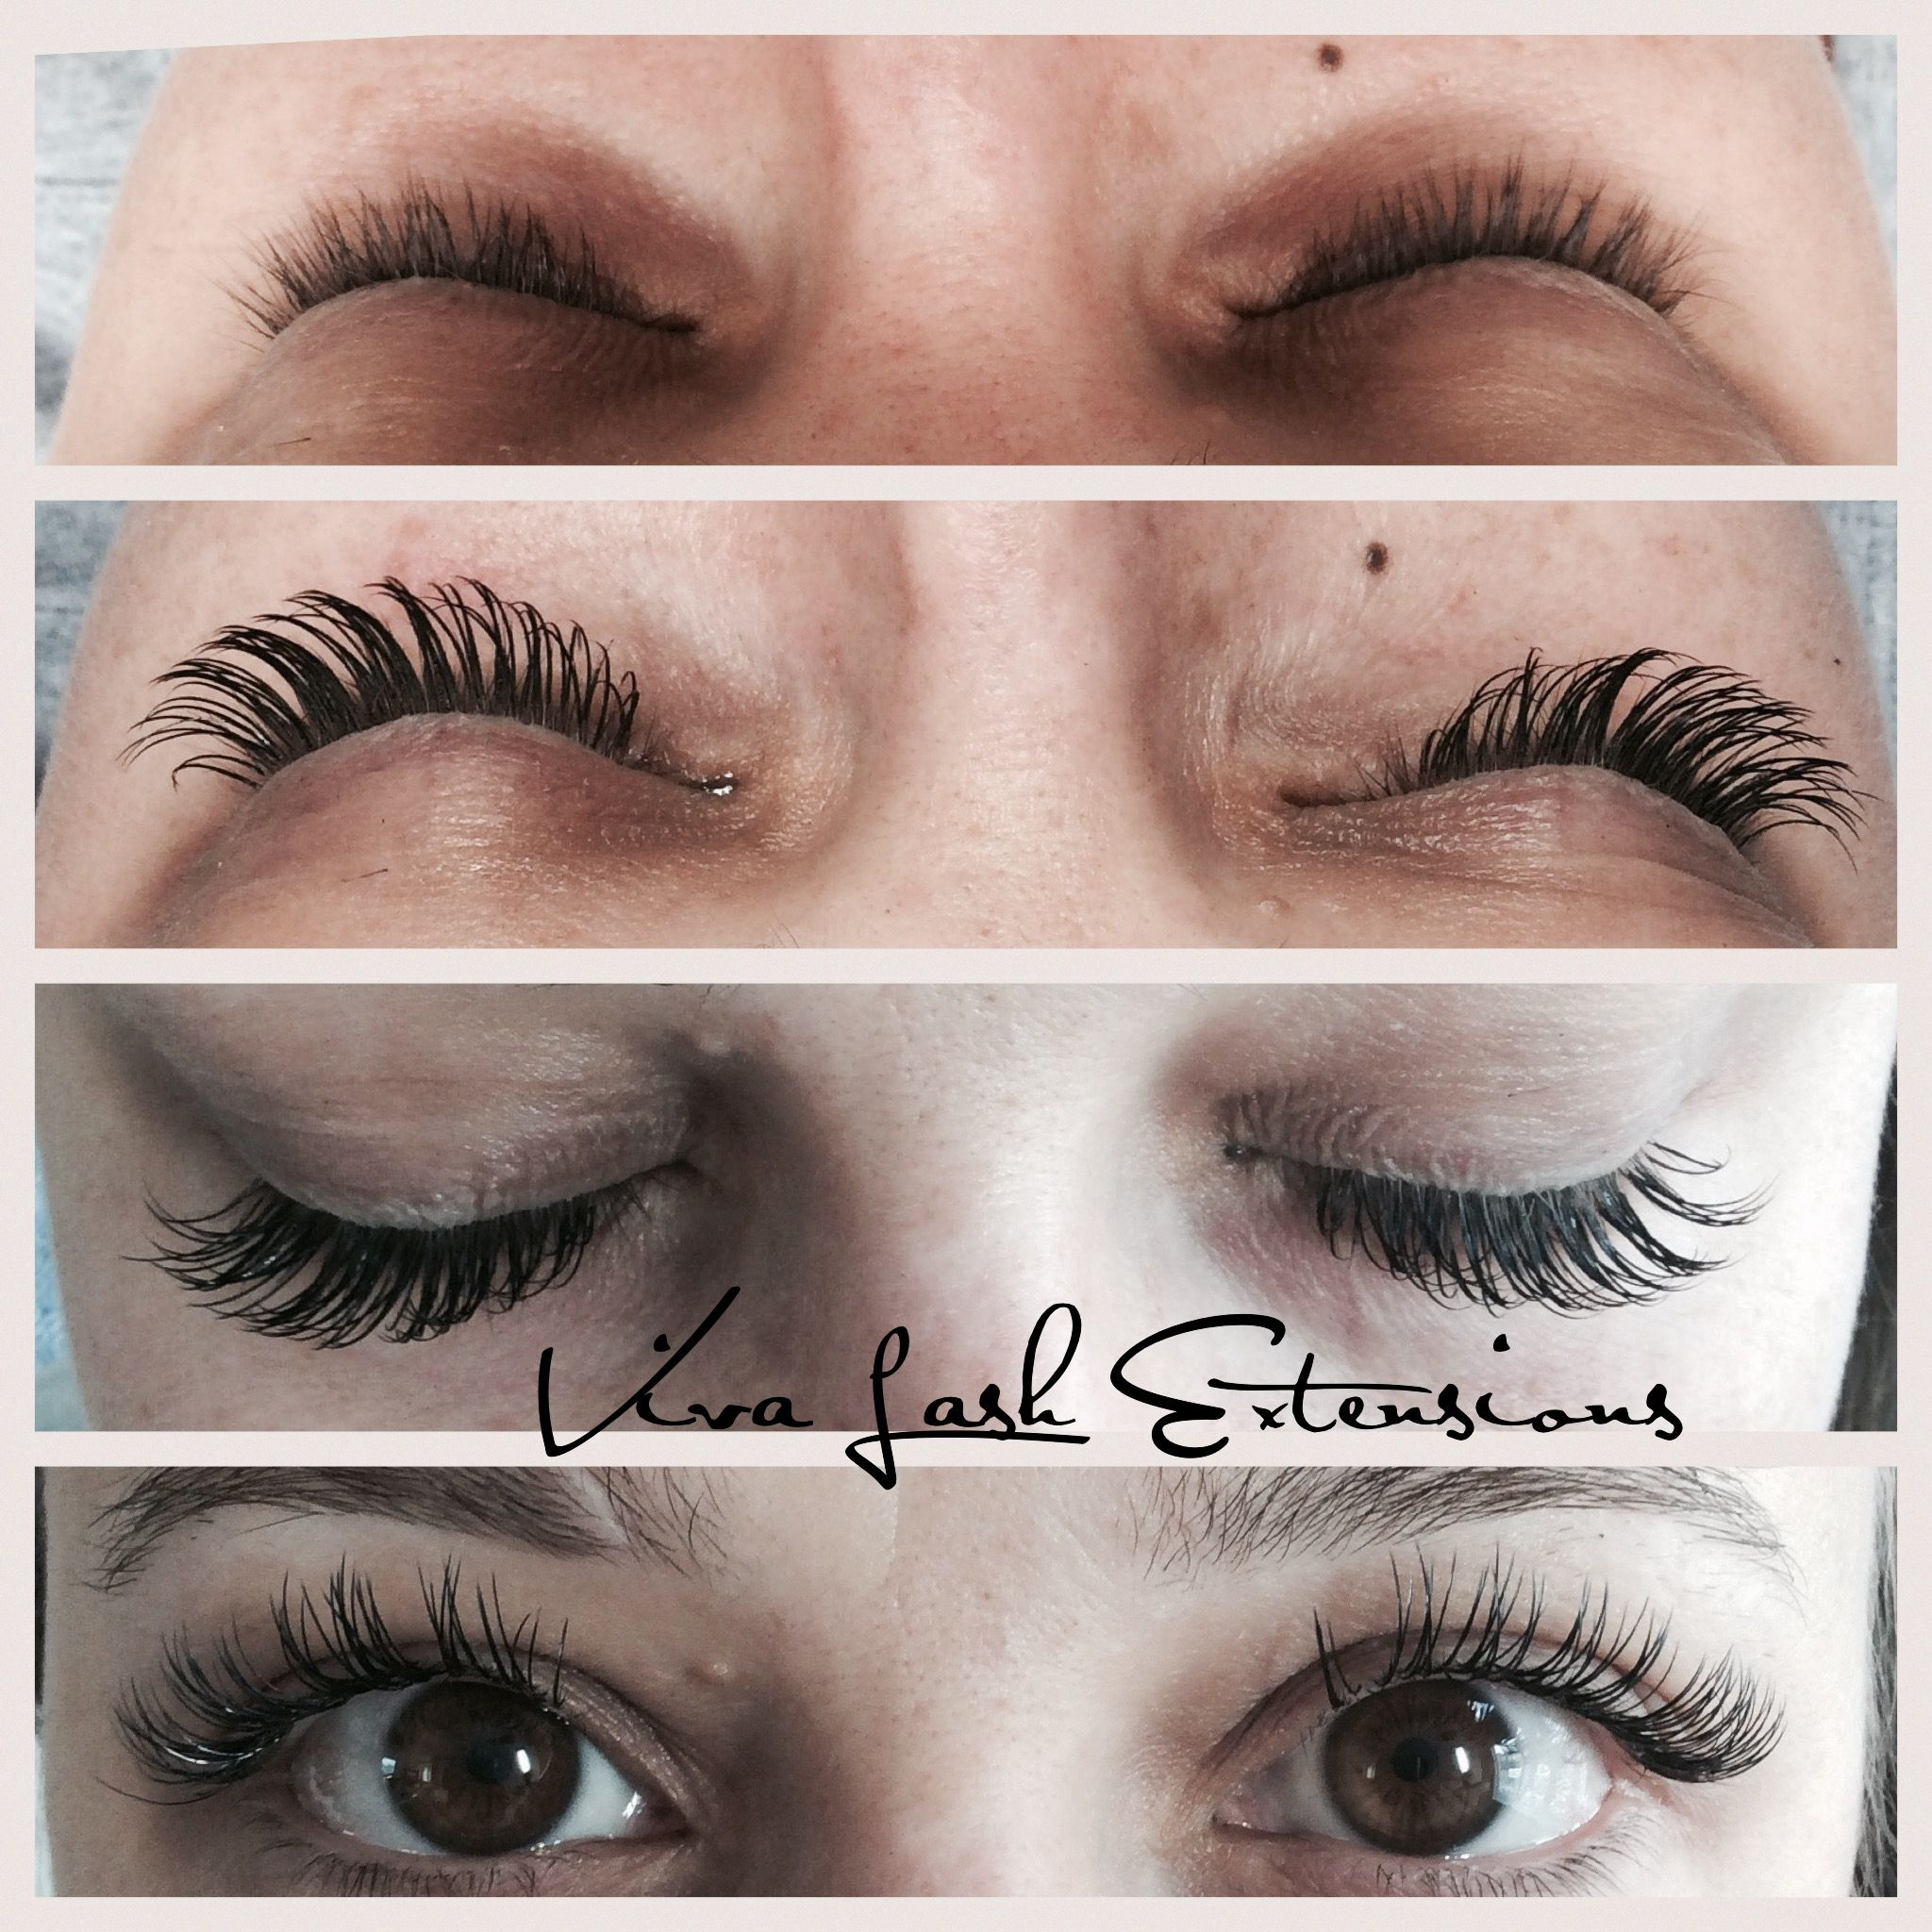 23de39aa769 How do you like them lashes? 11mm c curl .20 classic lashes. Forget the  drama! This princess looks glamorous all day! $80 full set